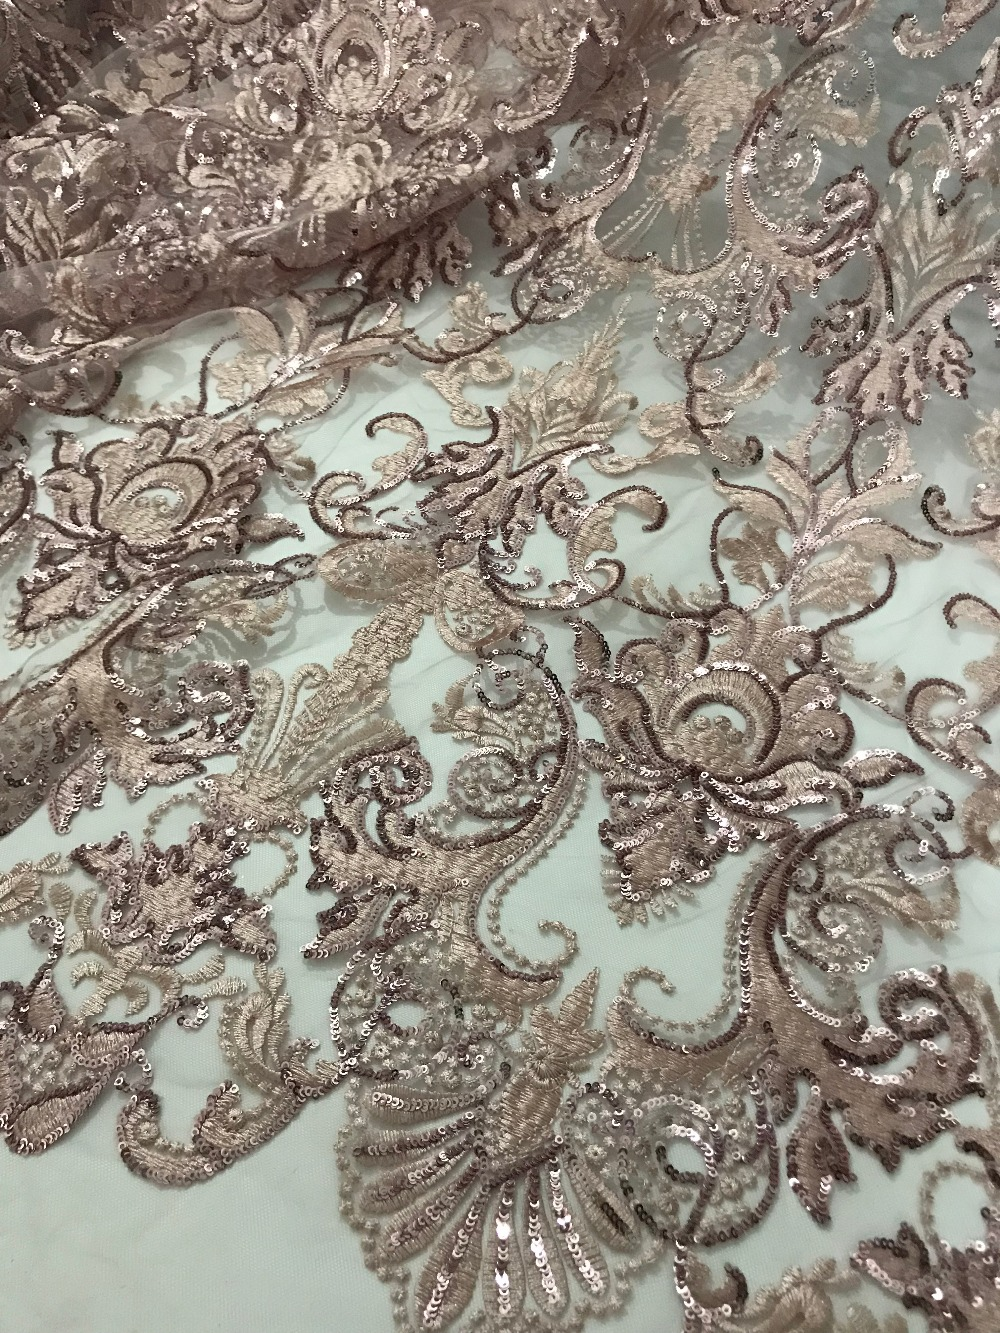 fast shipping 5 yards embroidery tulle mesh lace fabric JIANXI C 71518 with sequins for wedding